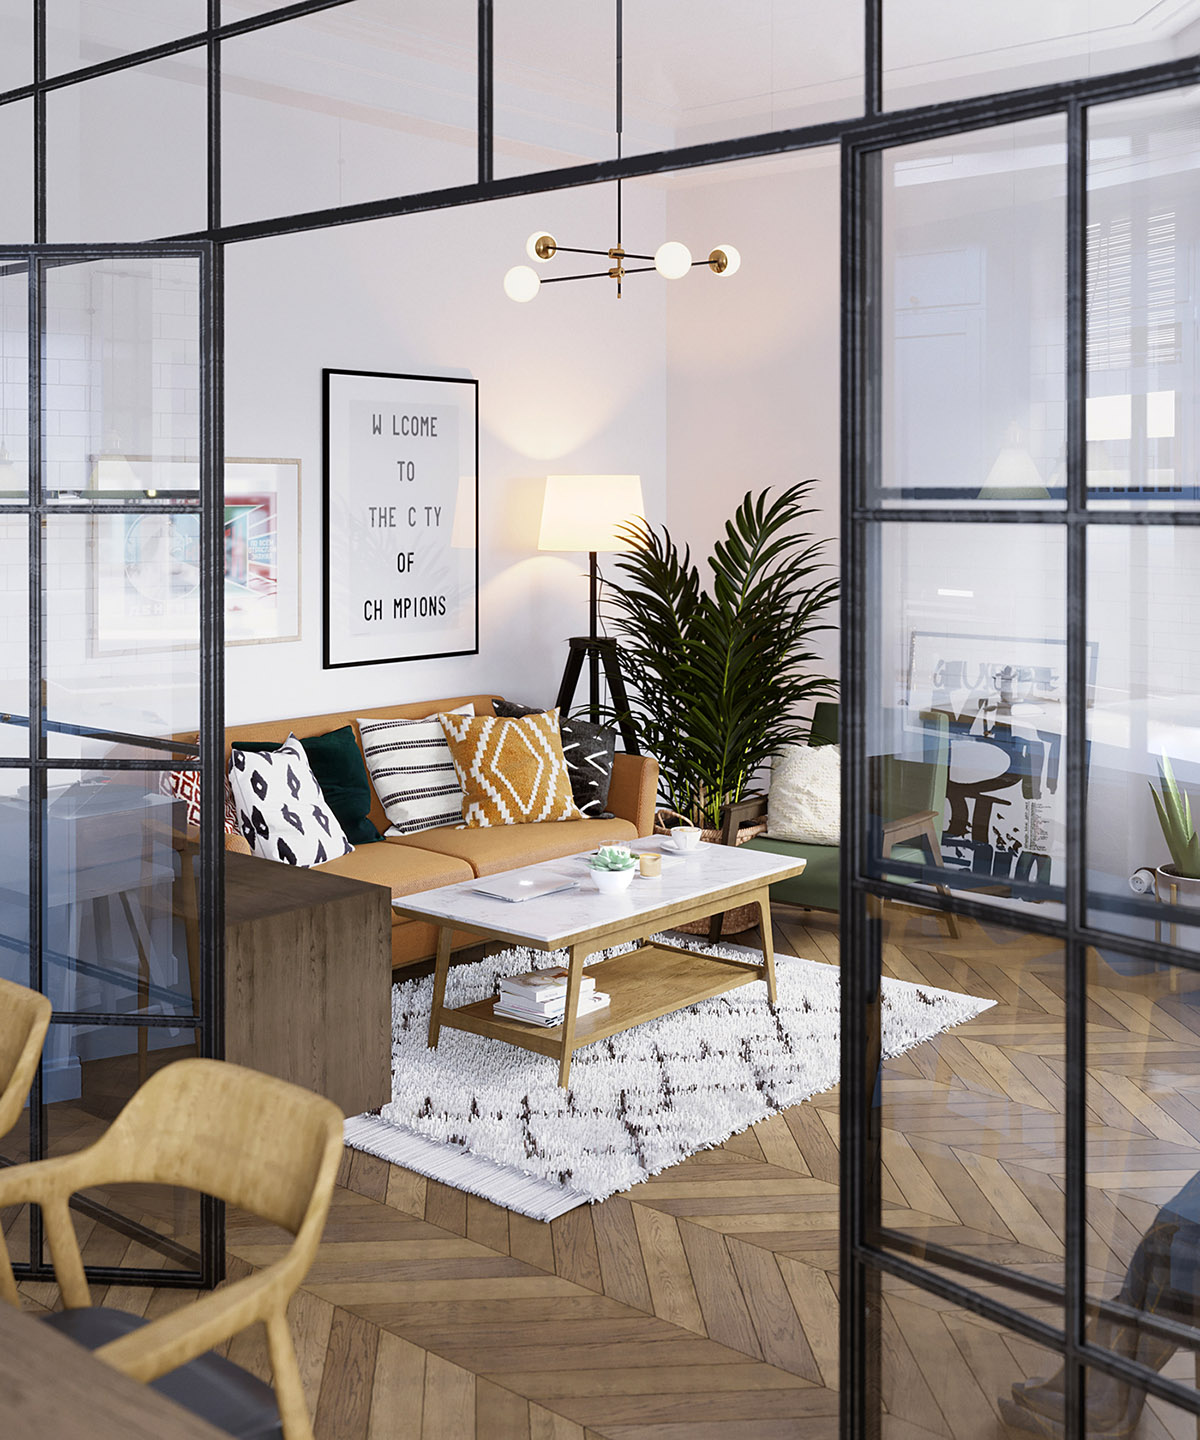 Scandinavian Home Design Looks So Charming With Eclectic: Earthy Eclectic Scandinavian Style Interior